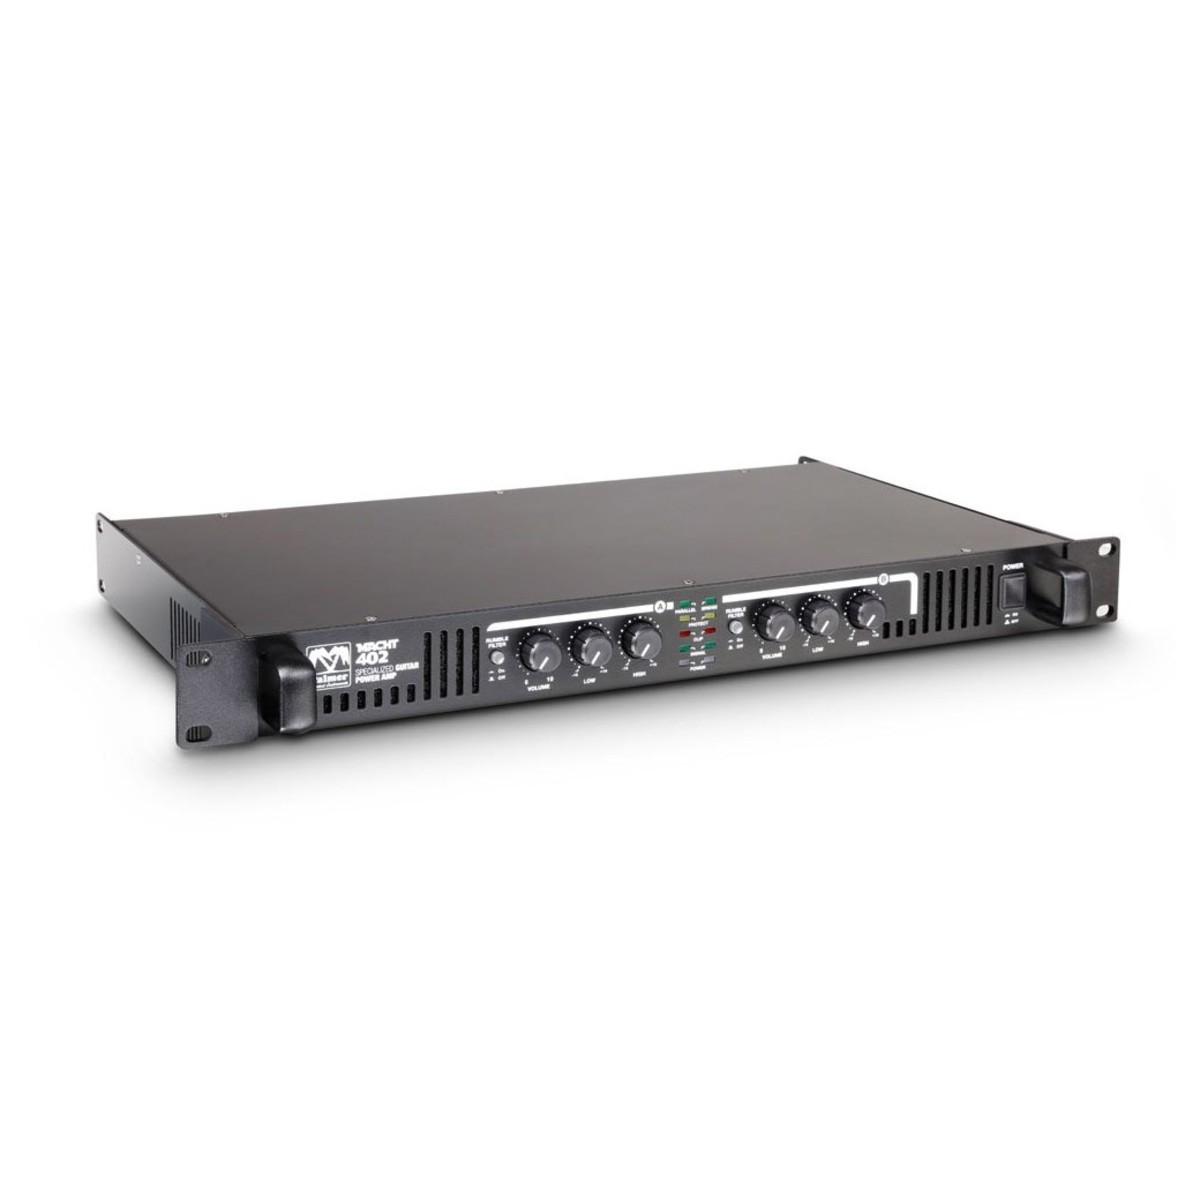 palmer macht 402 19 stereo power amp for guitar at gear4music. Black Bedroom Furniture Sets. Home Design Ideas